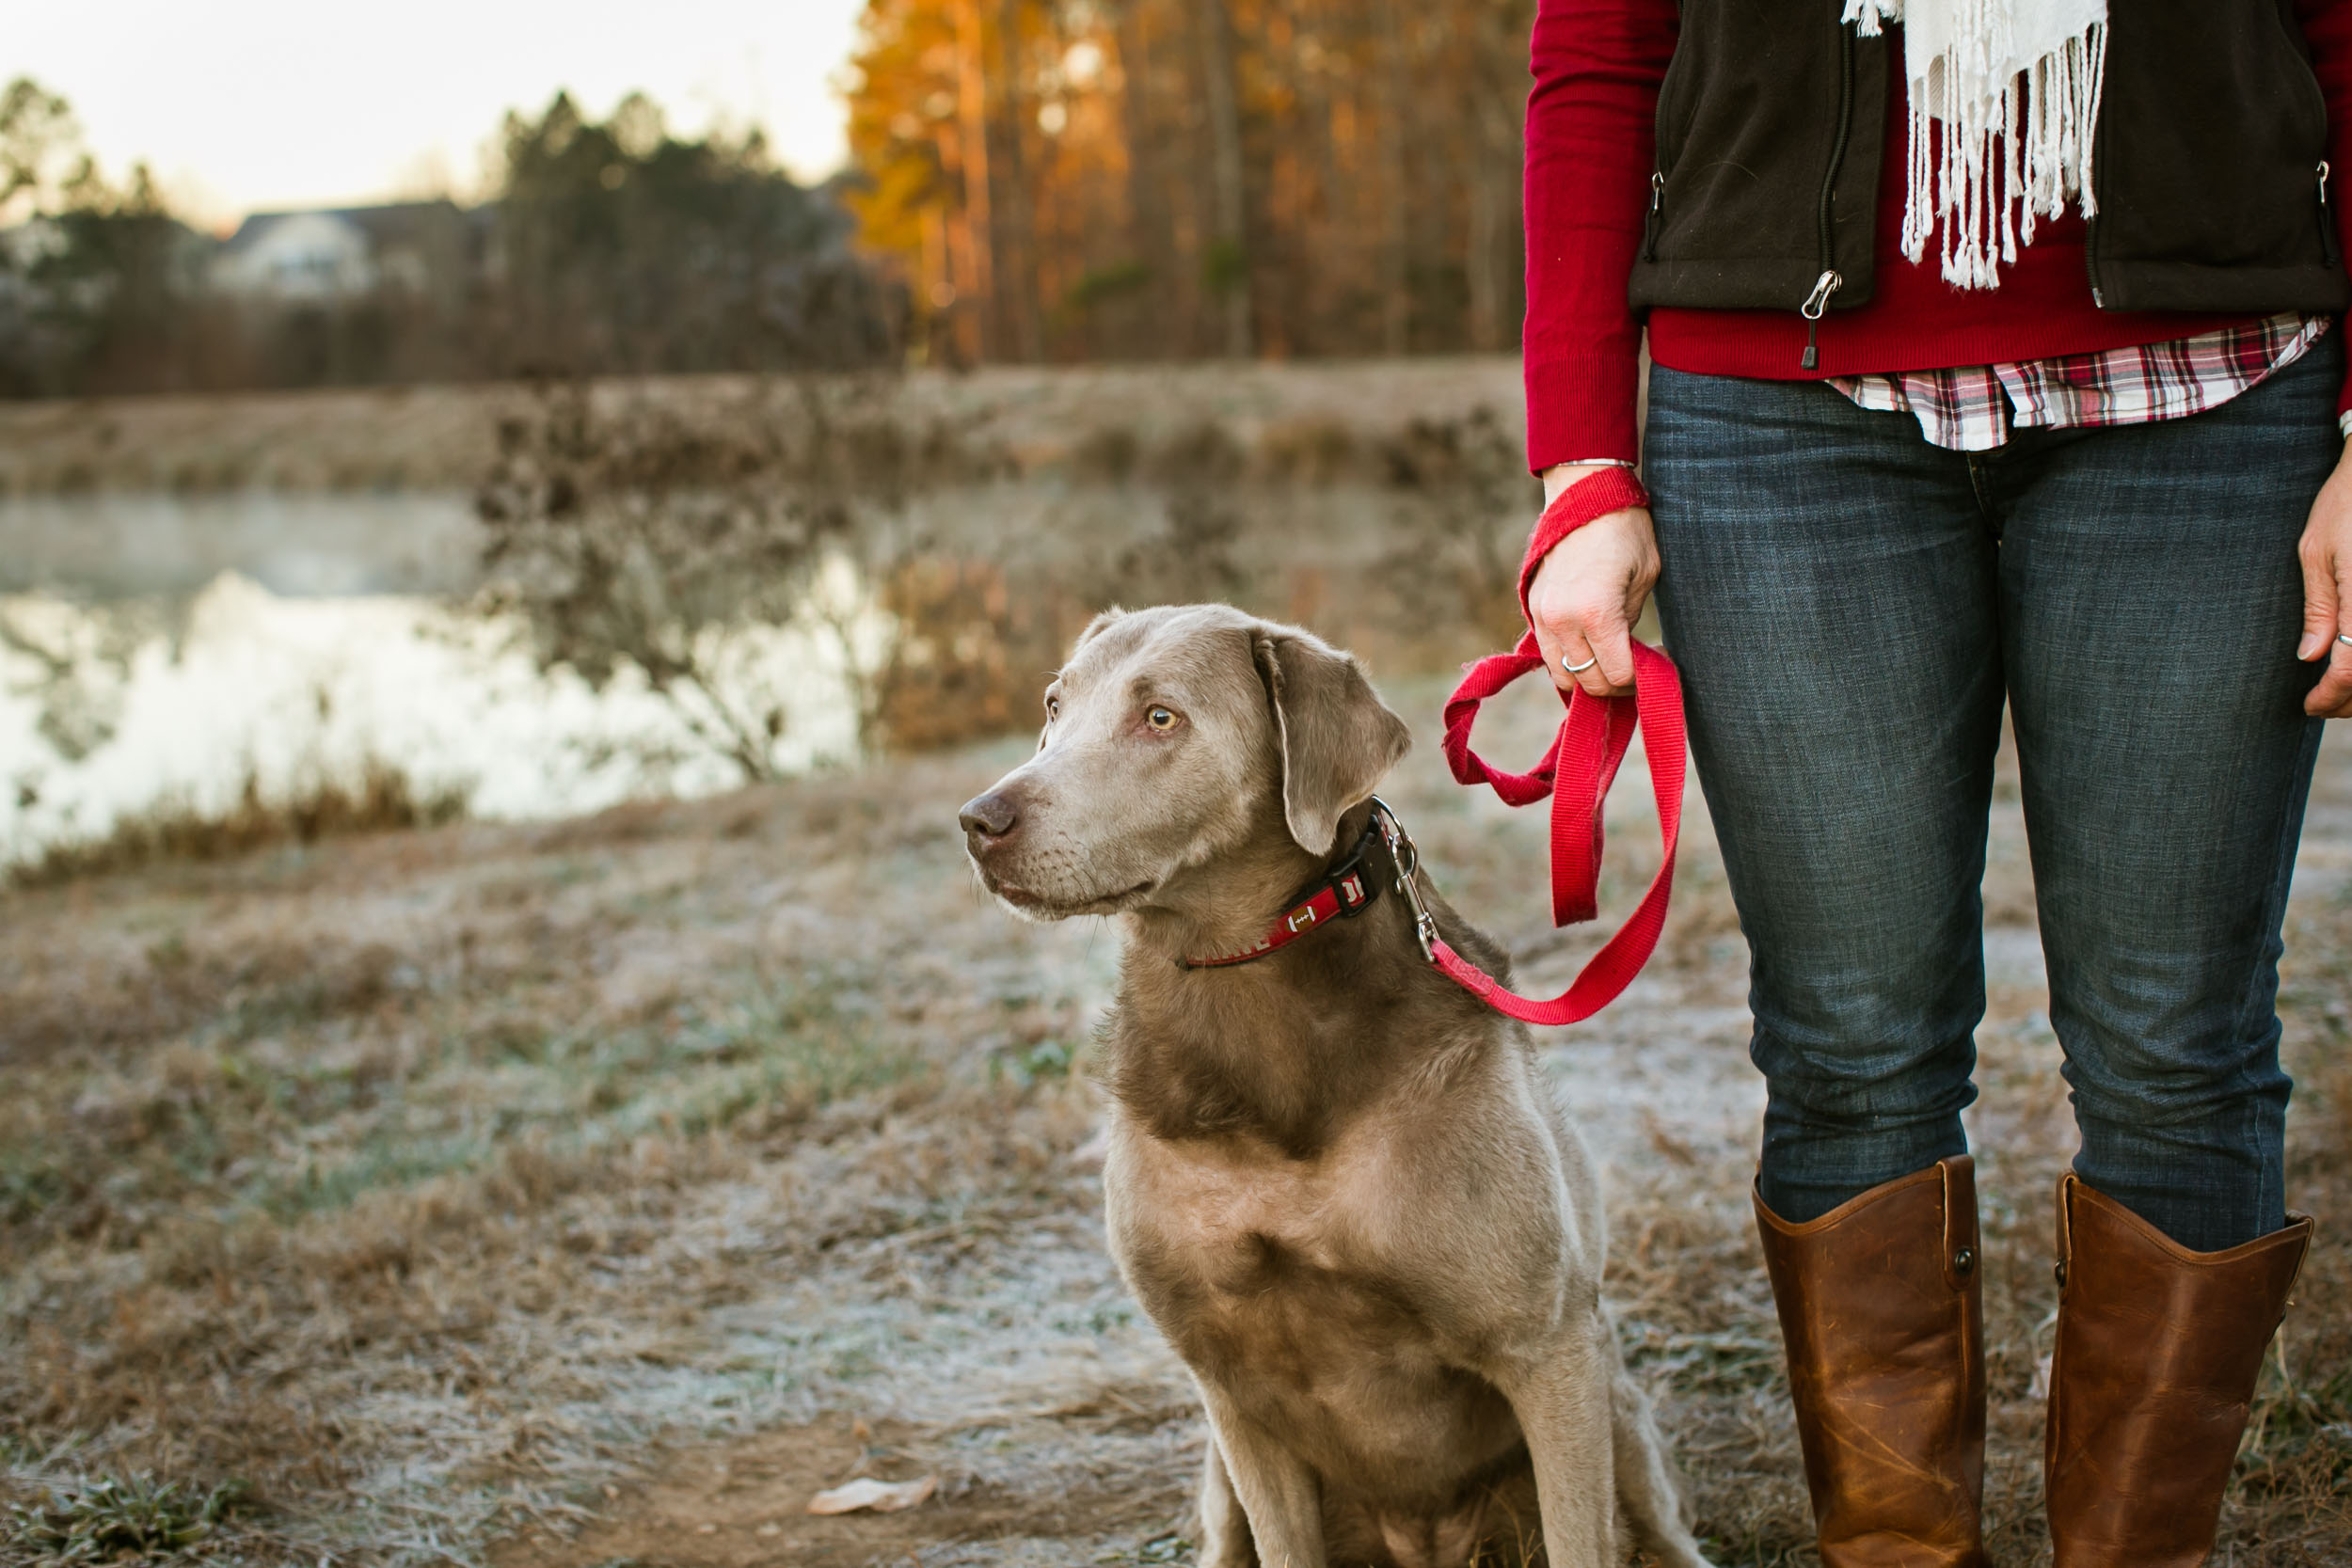 Durham Family Photographer | G. Lin Photography | Dog on leash at park